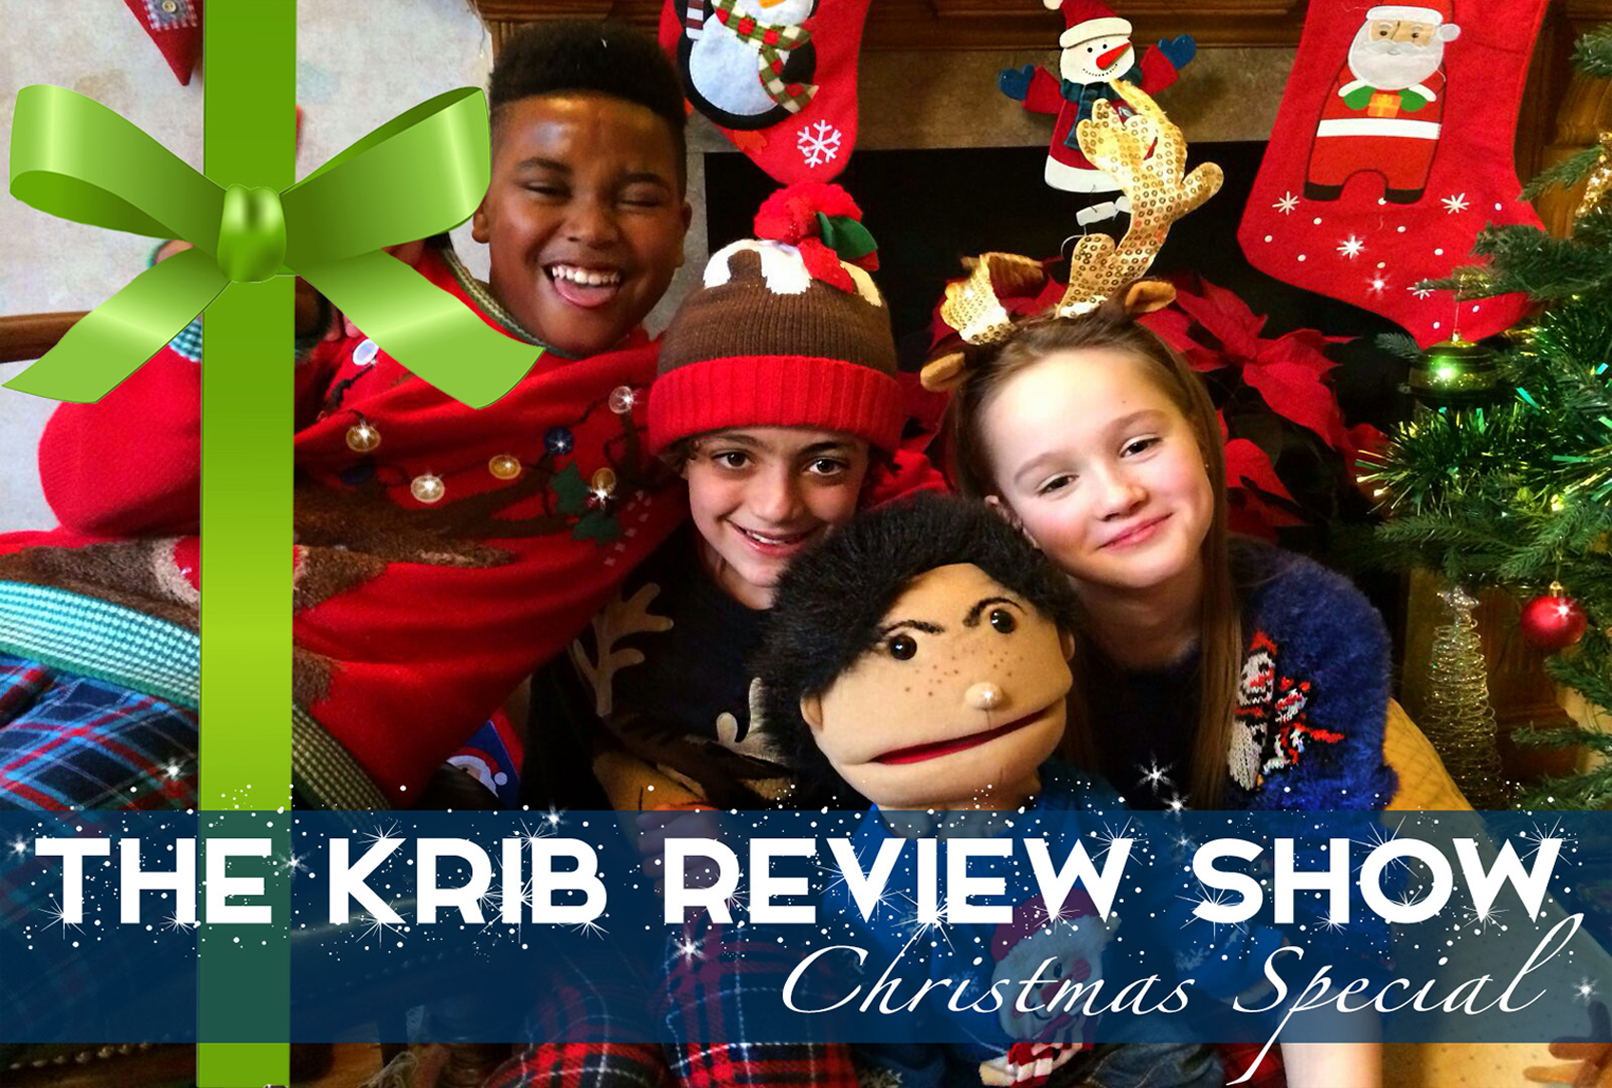 THE KRiB REVIEW SHOW